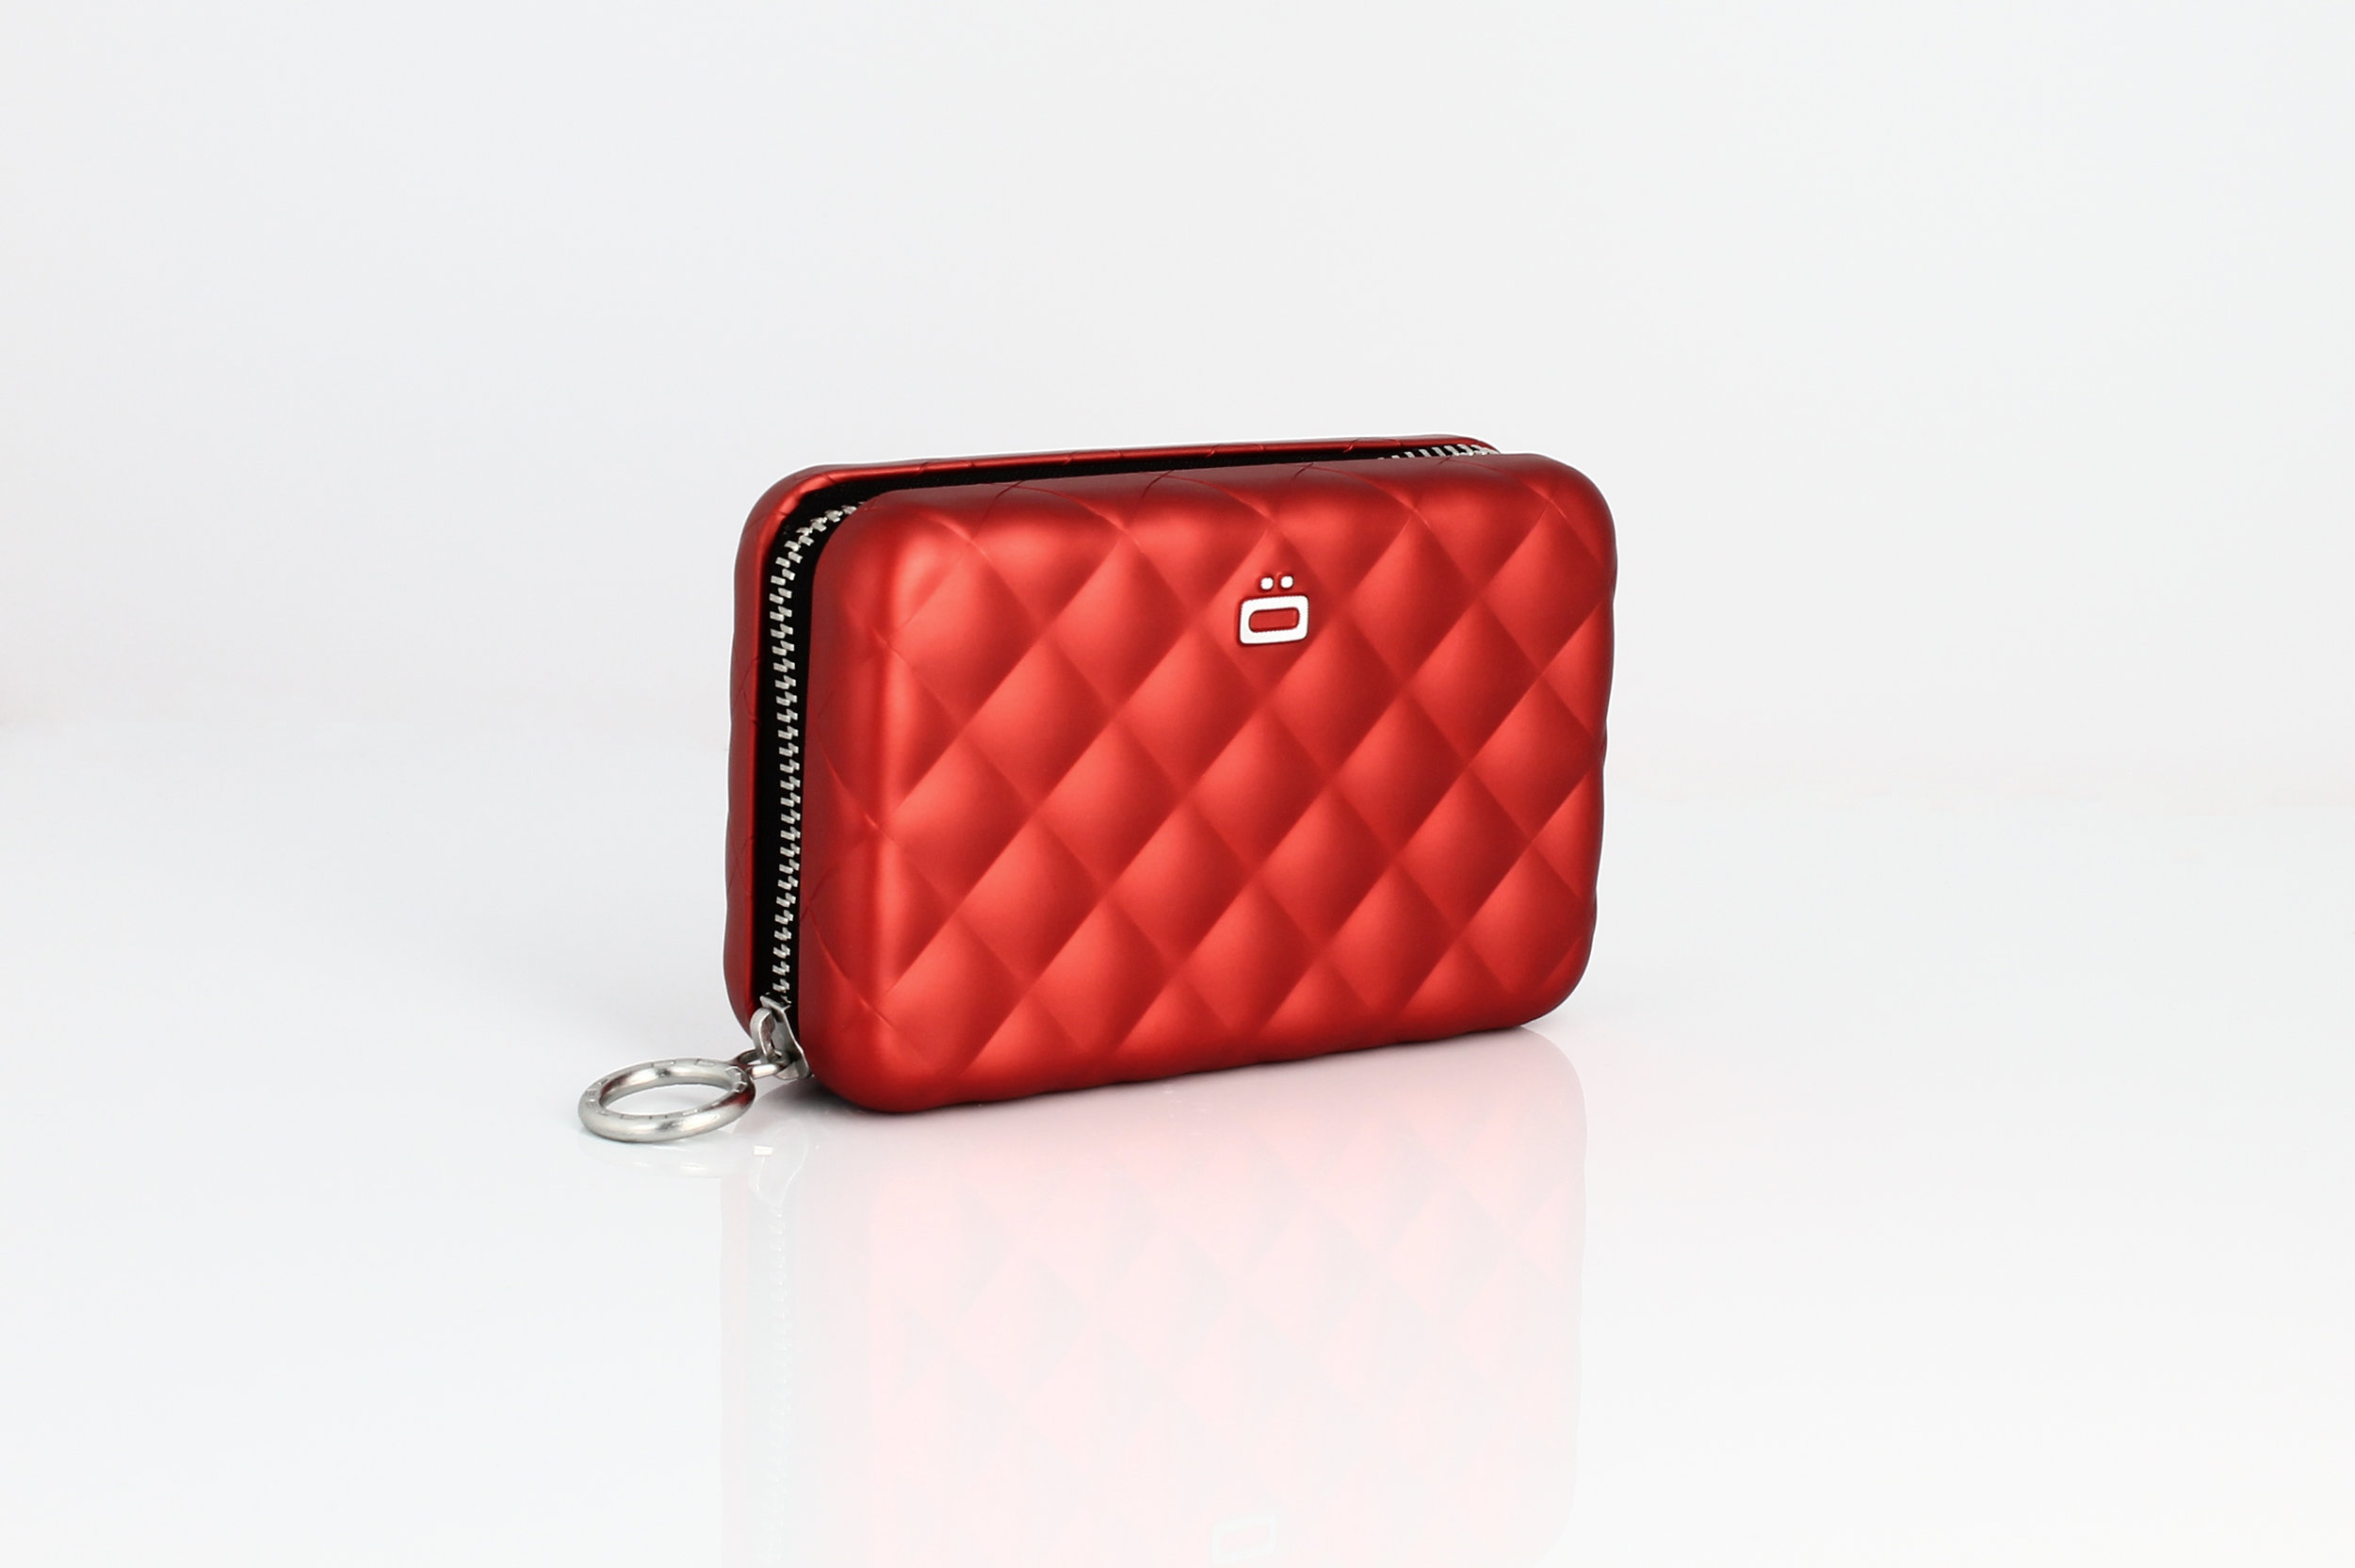 OGON - QUILTED ZIPPER - RED - 34.jpg